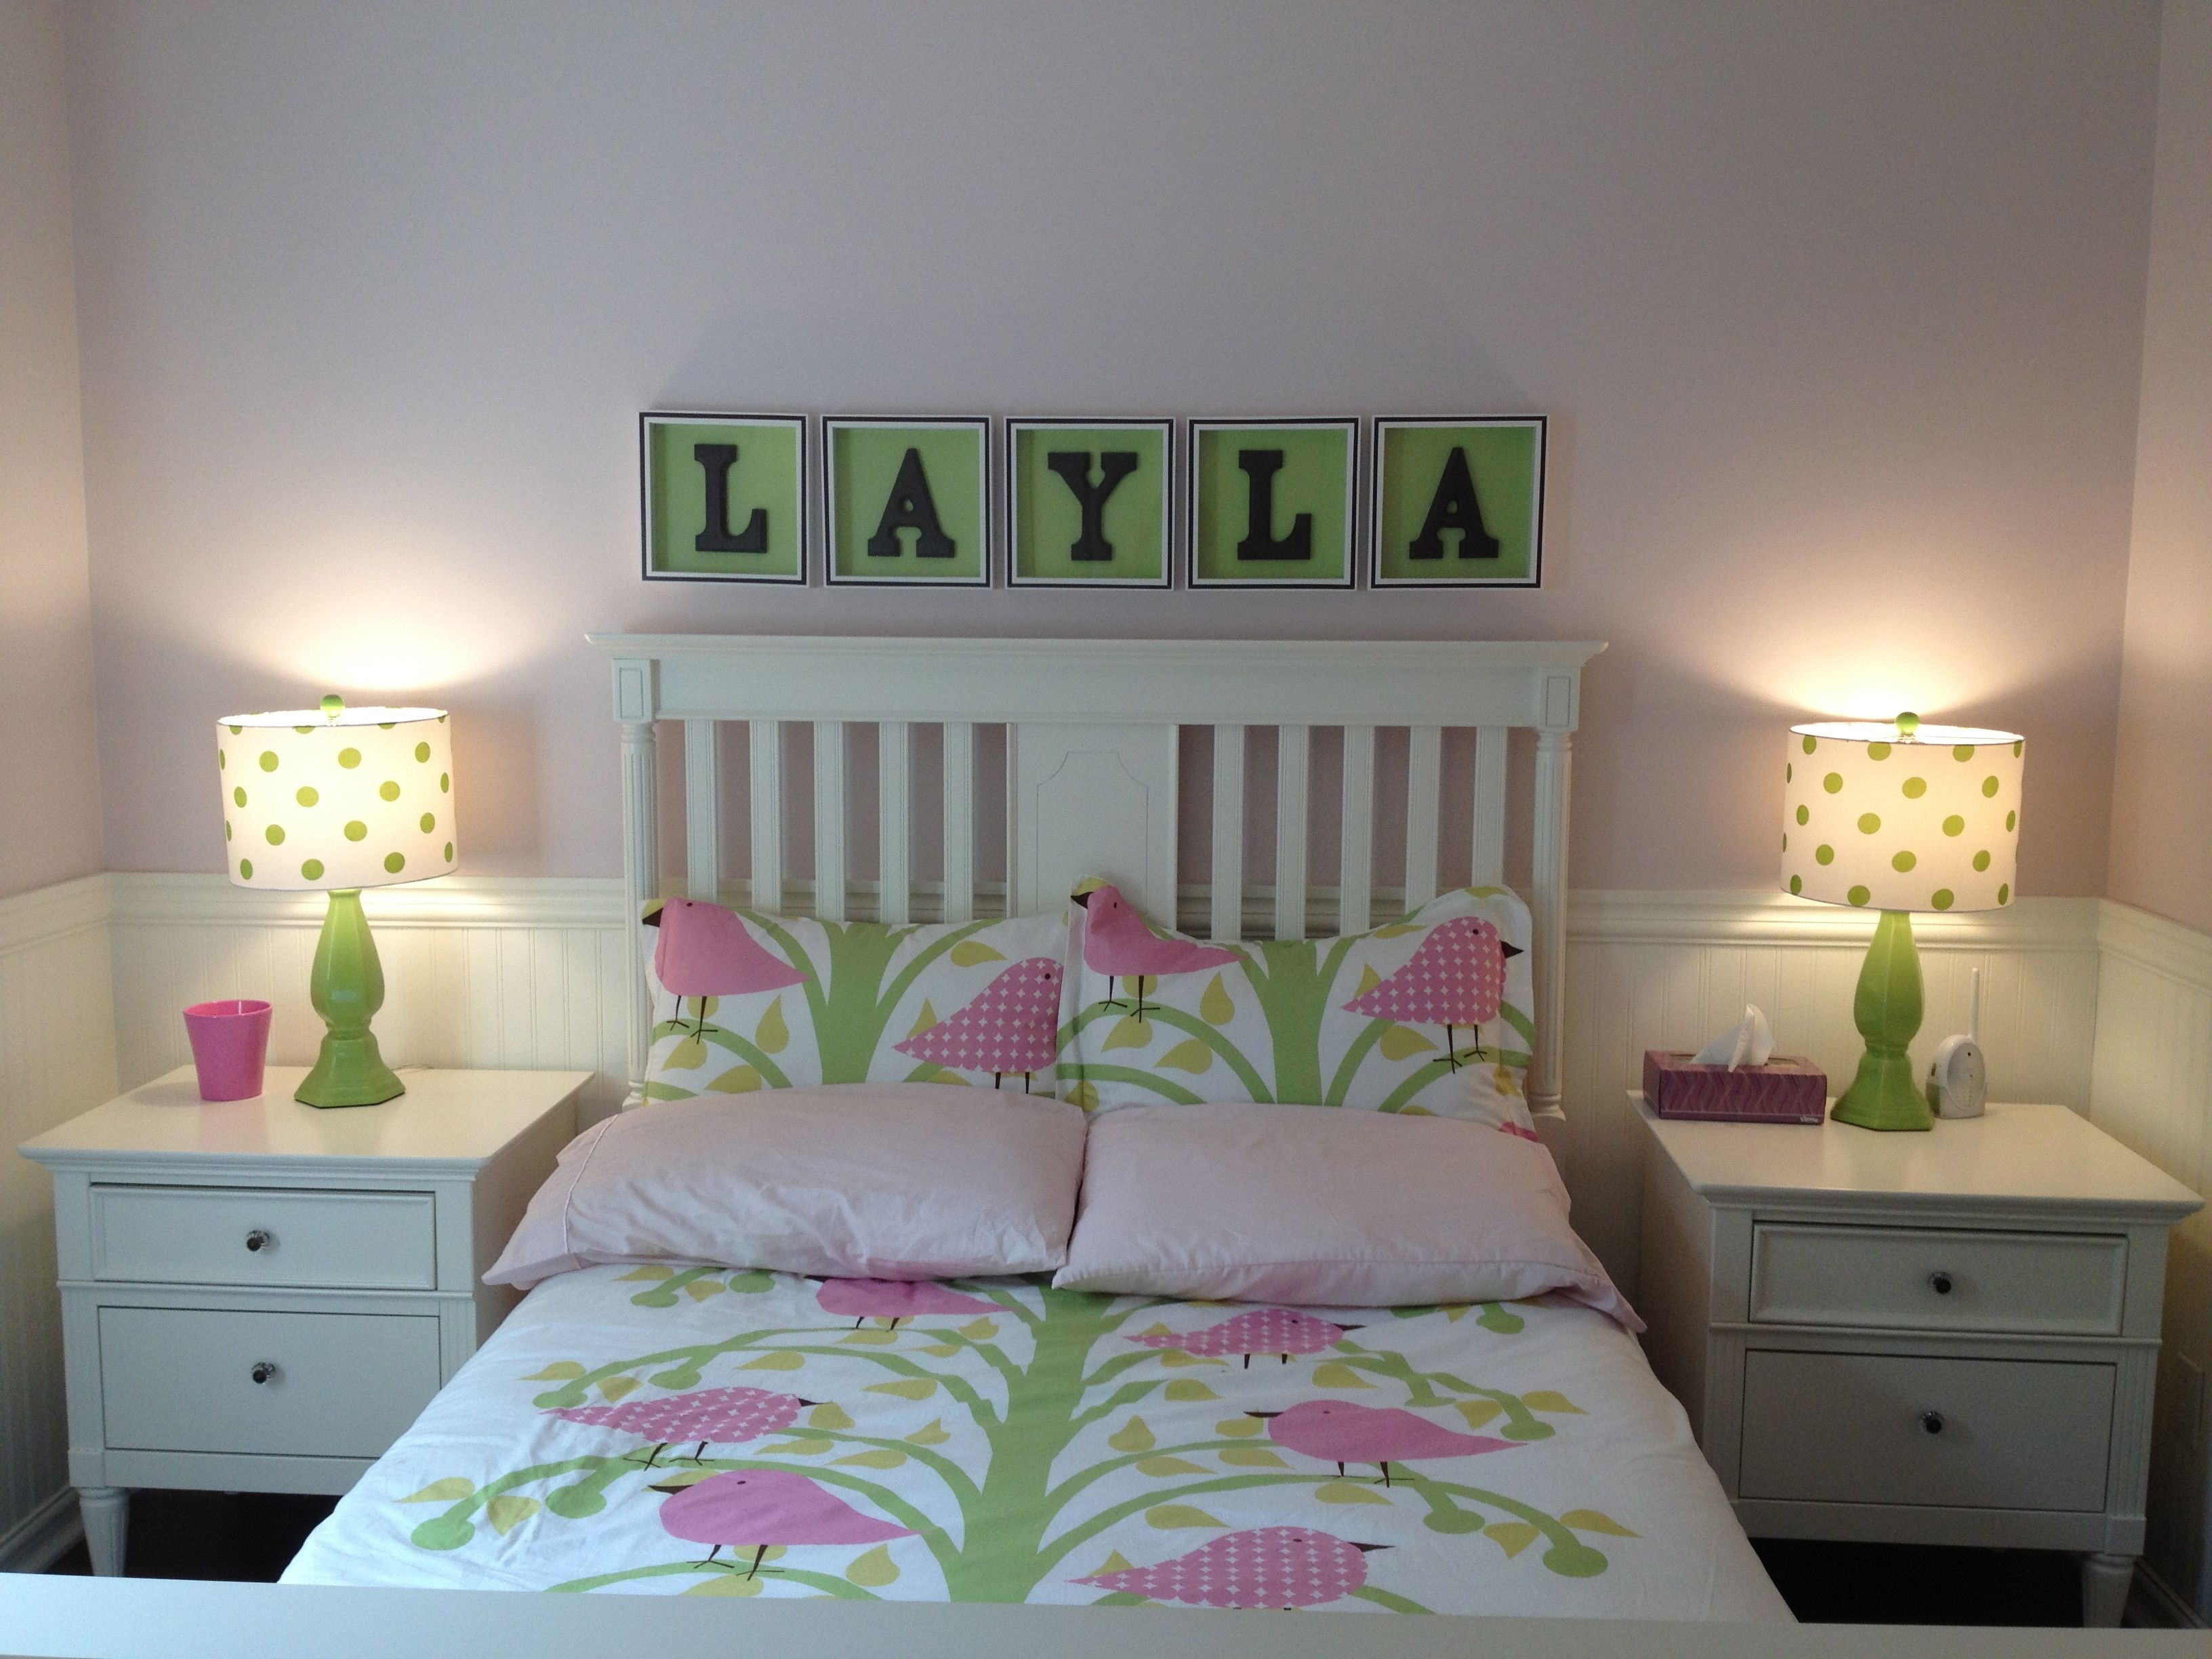 Young Girlu0027s Room In Pink, White And Green With Cute Bird Themed Linens.